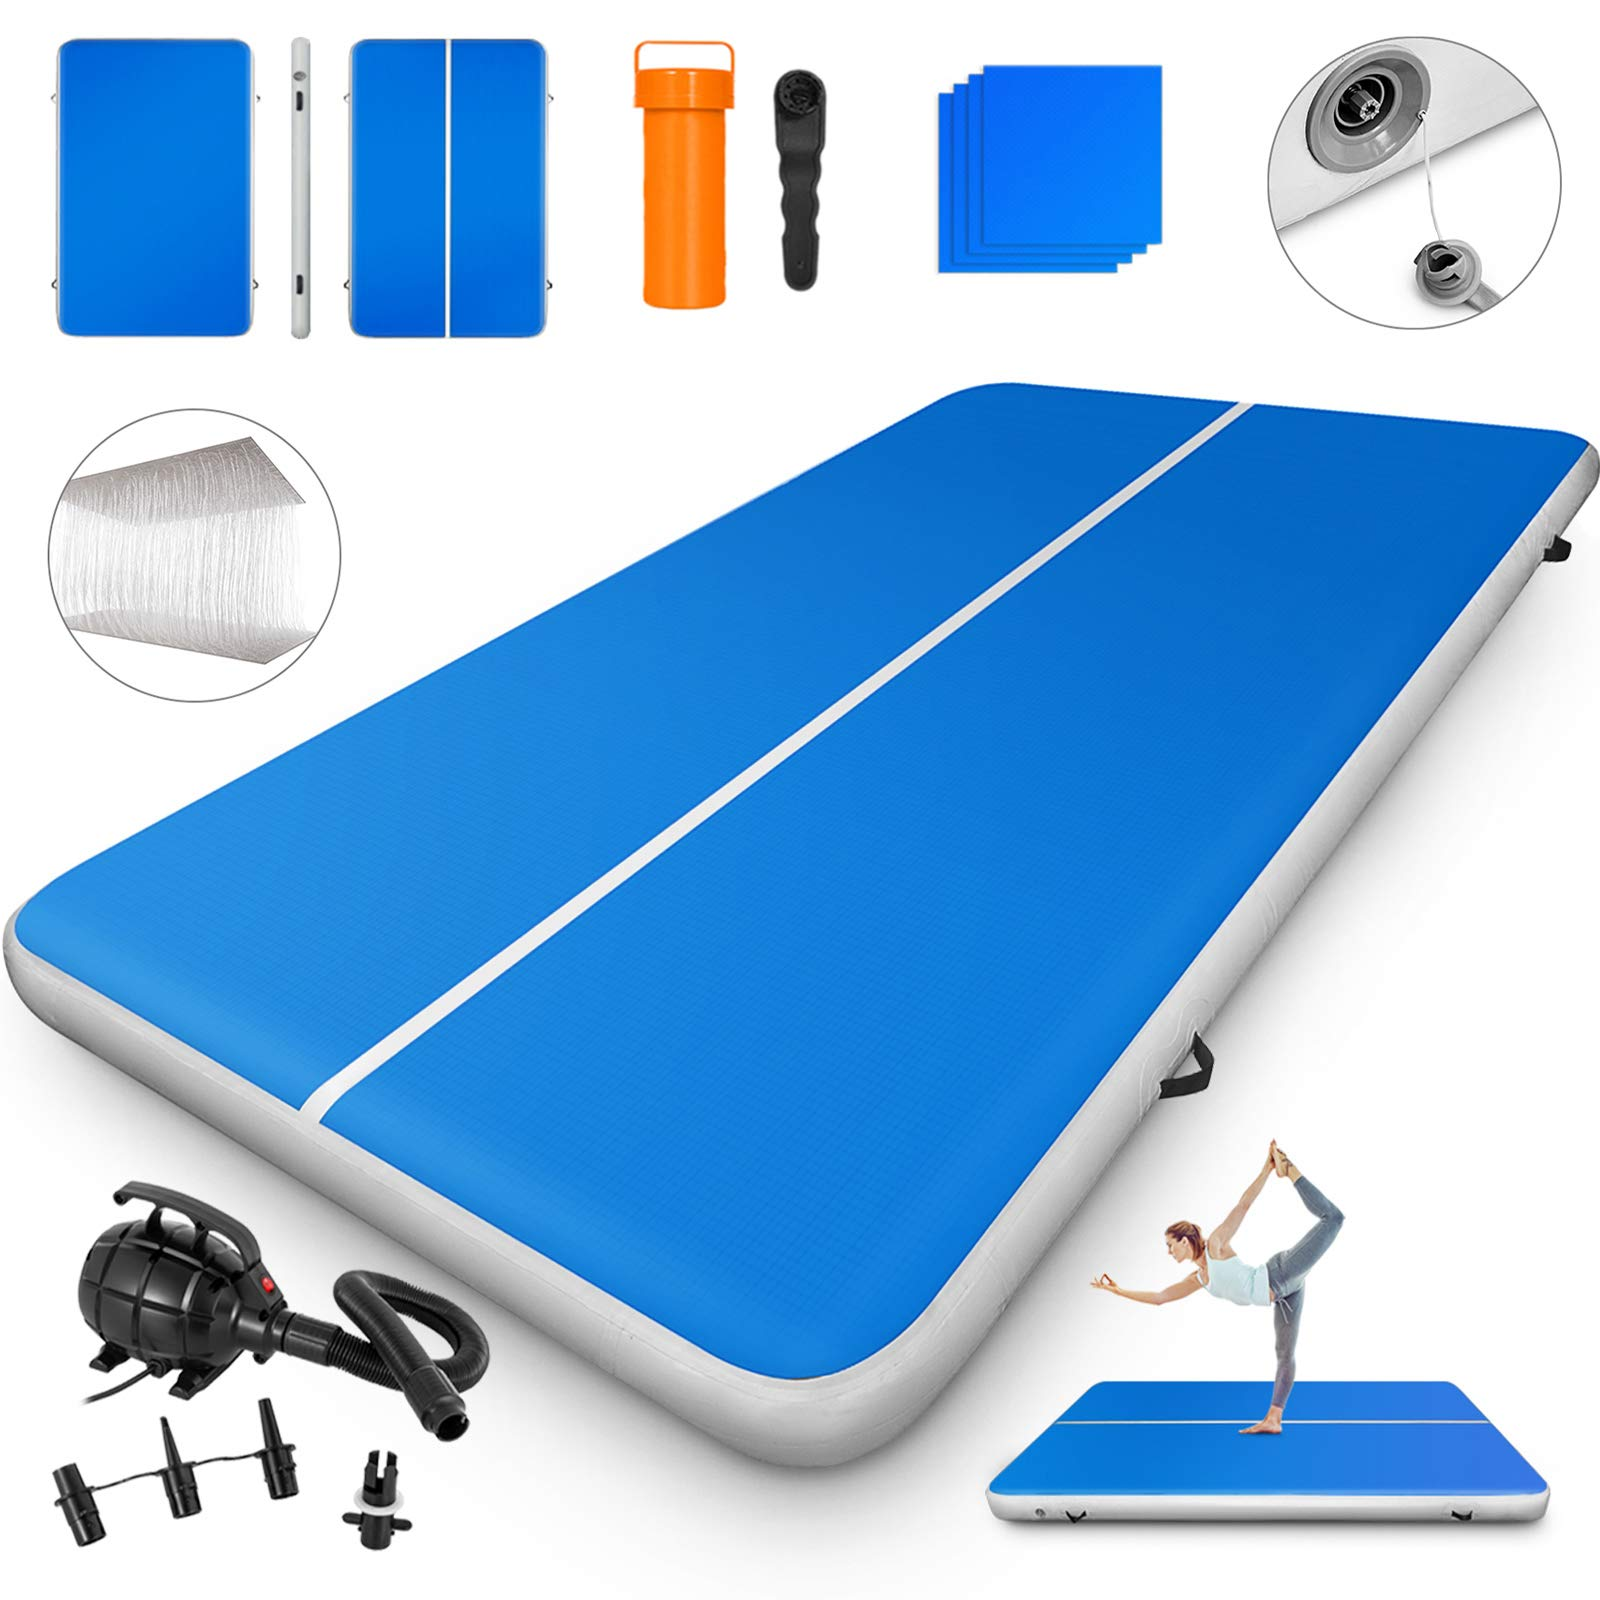 Happybuy 10ft/13ft/17ft/20ft/23ft/26ft/33ft Air Track 8 inches Thick Tumbling Mat Inflatable Gymnastics Airtrack for Home/Cheerleading/Yoga/Parkour/Water with Pump